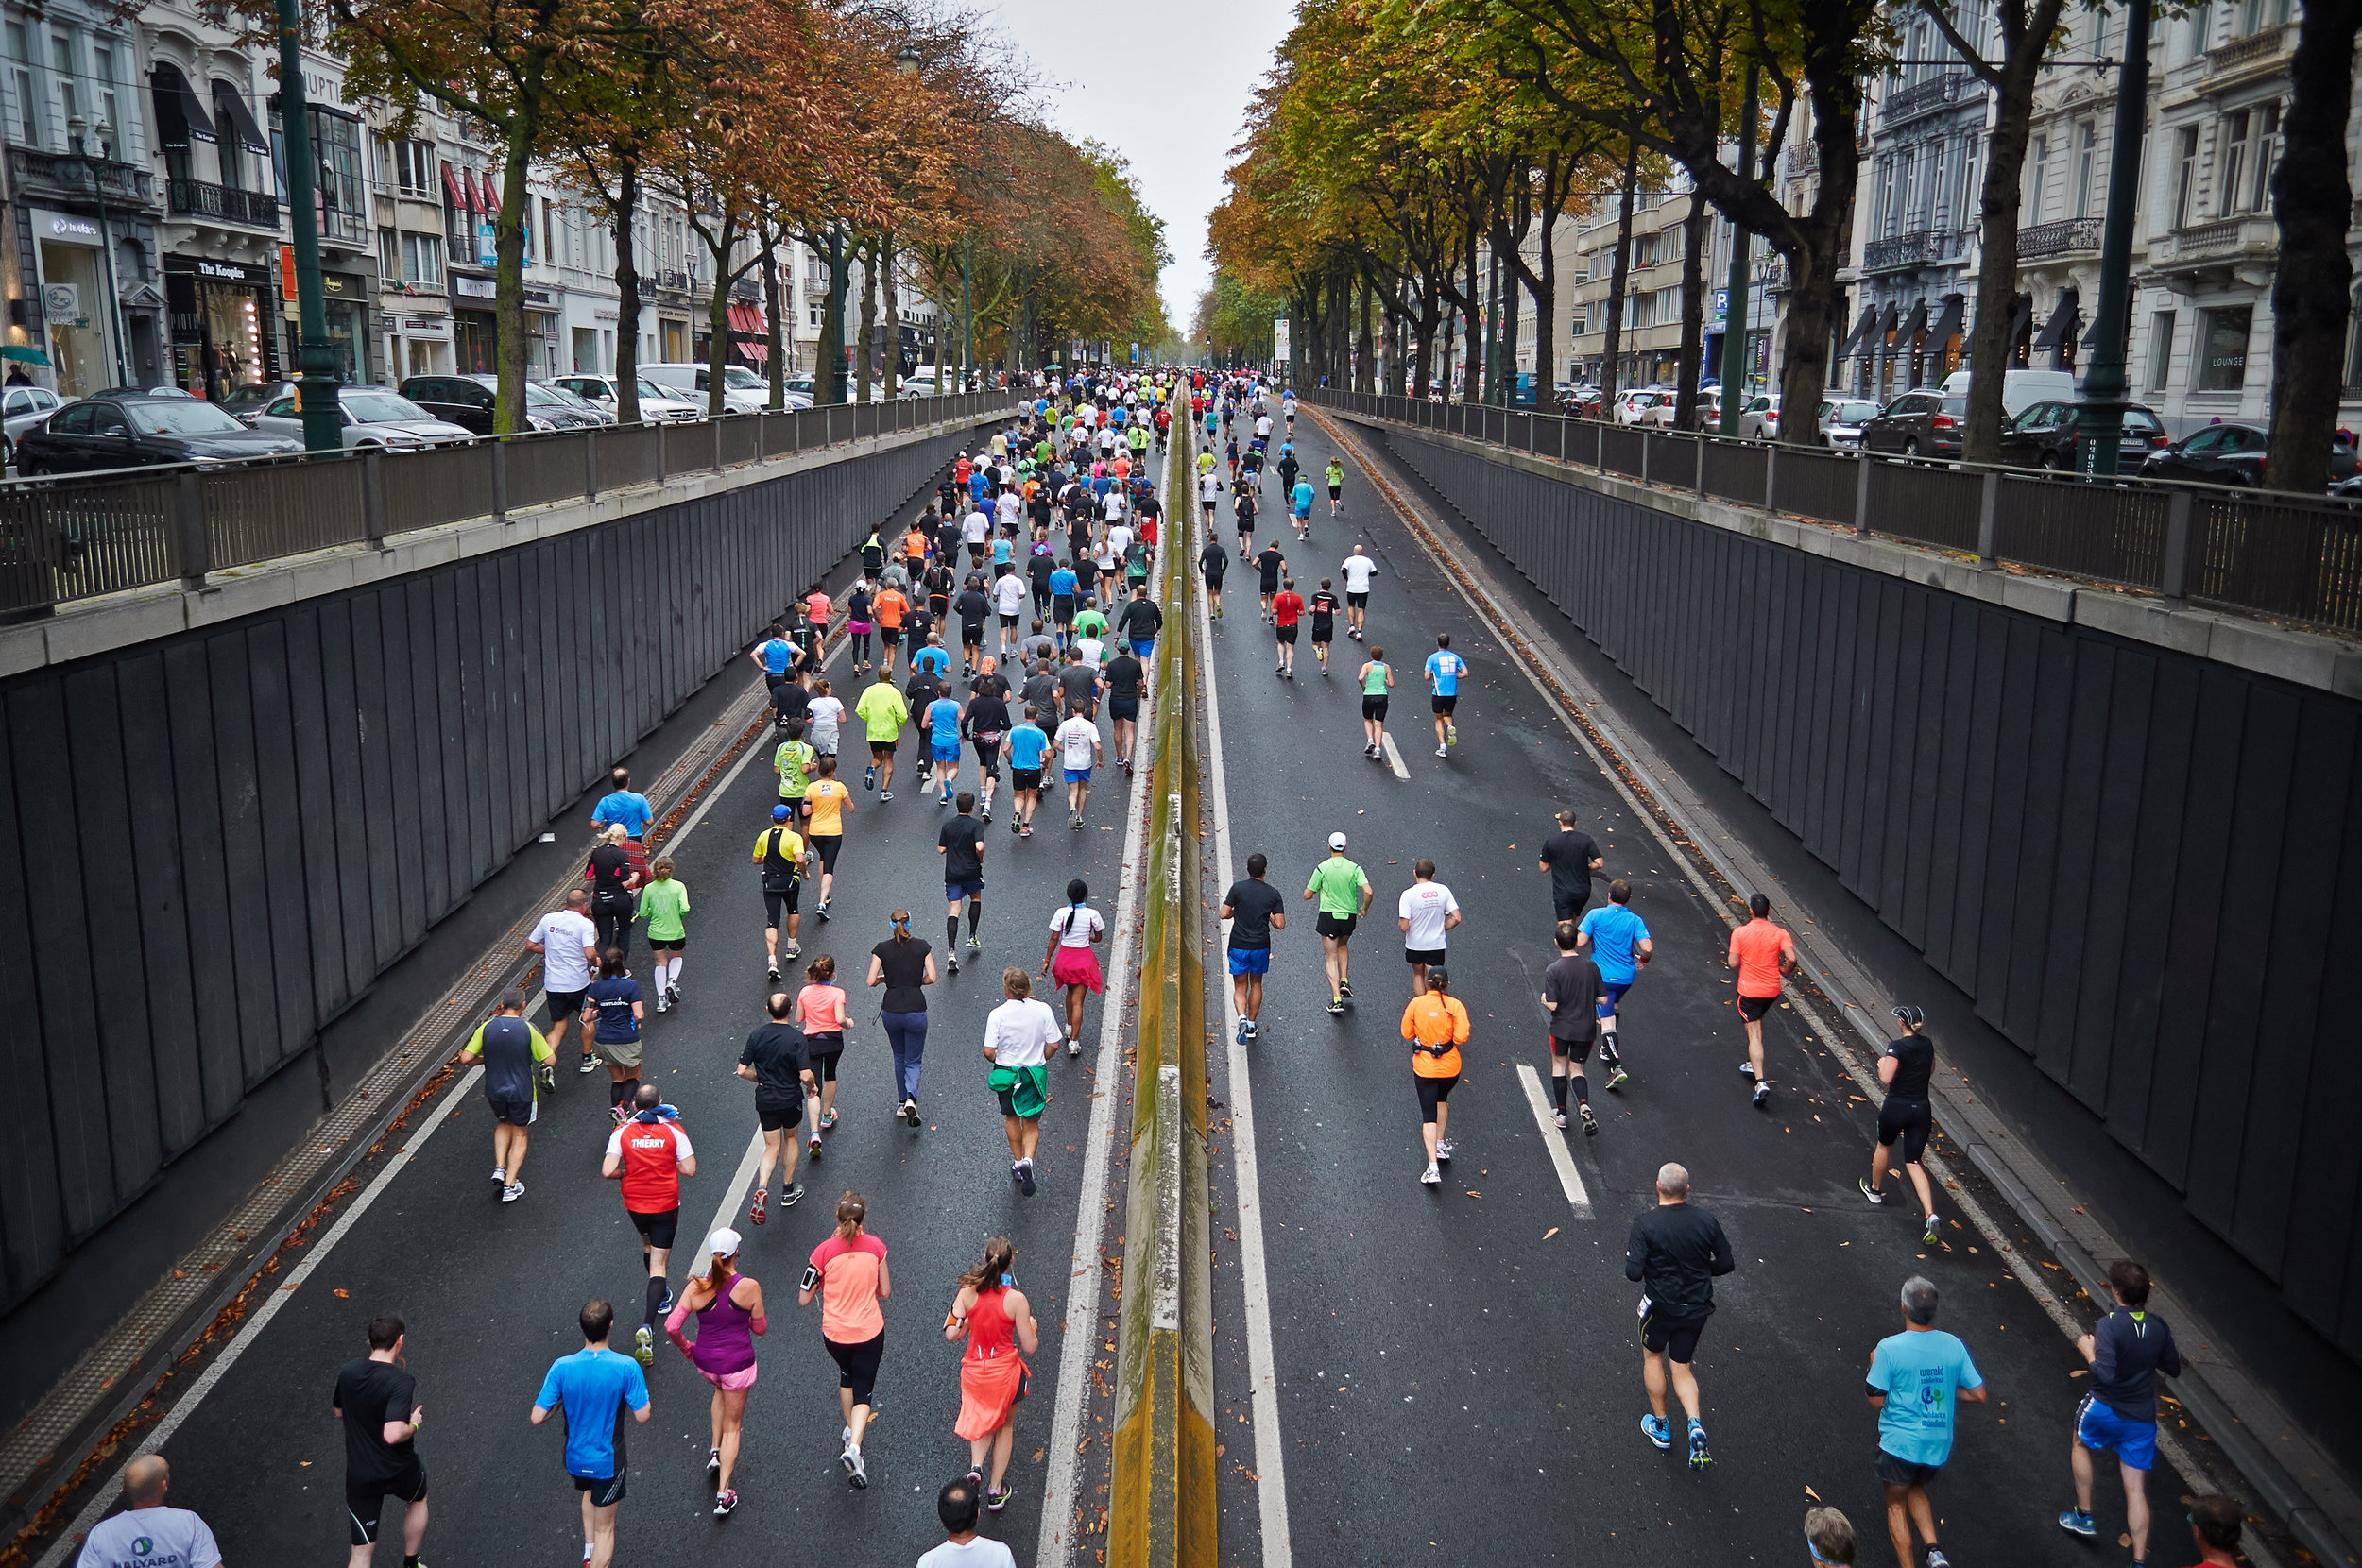 Are you running a marathon? - Check out these tips for running a marathon.